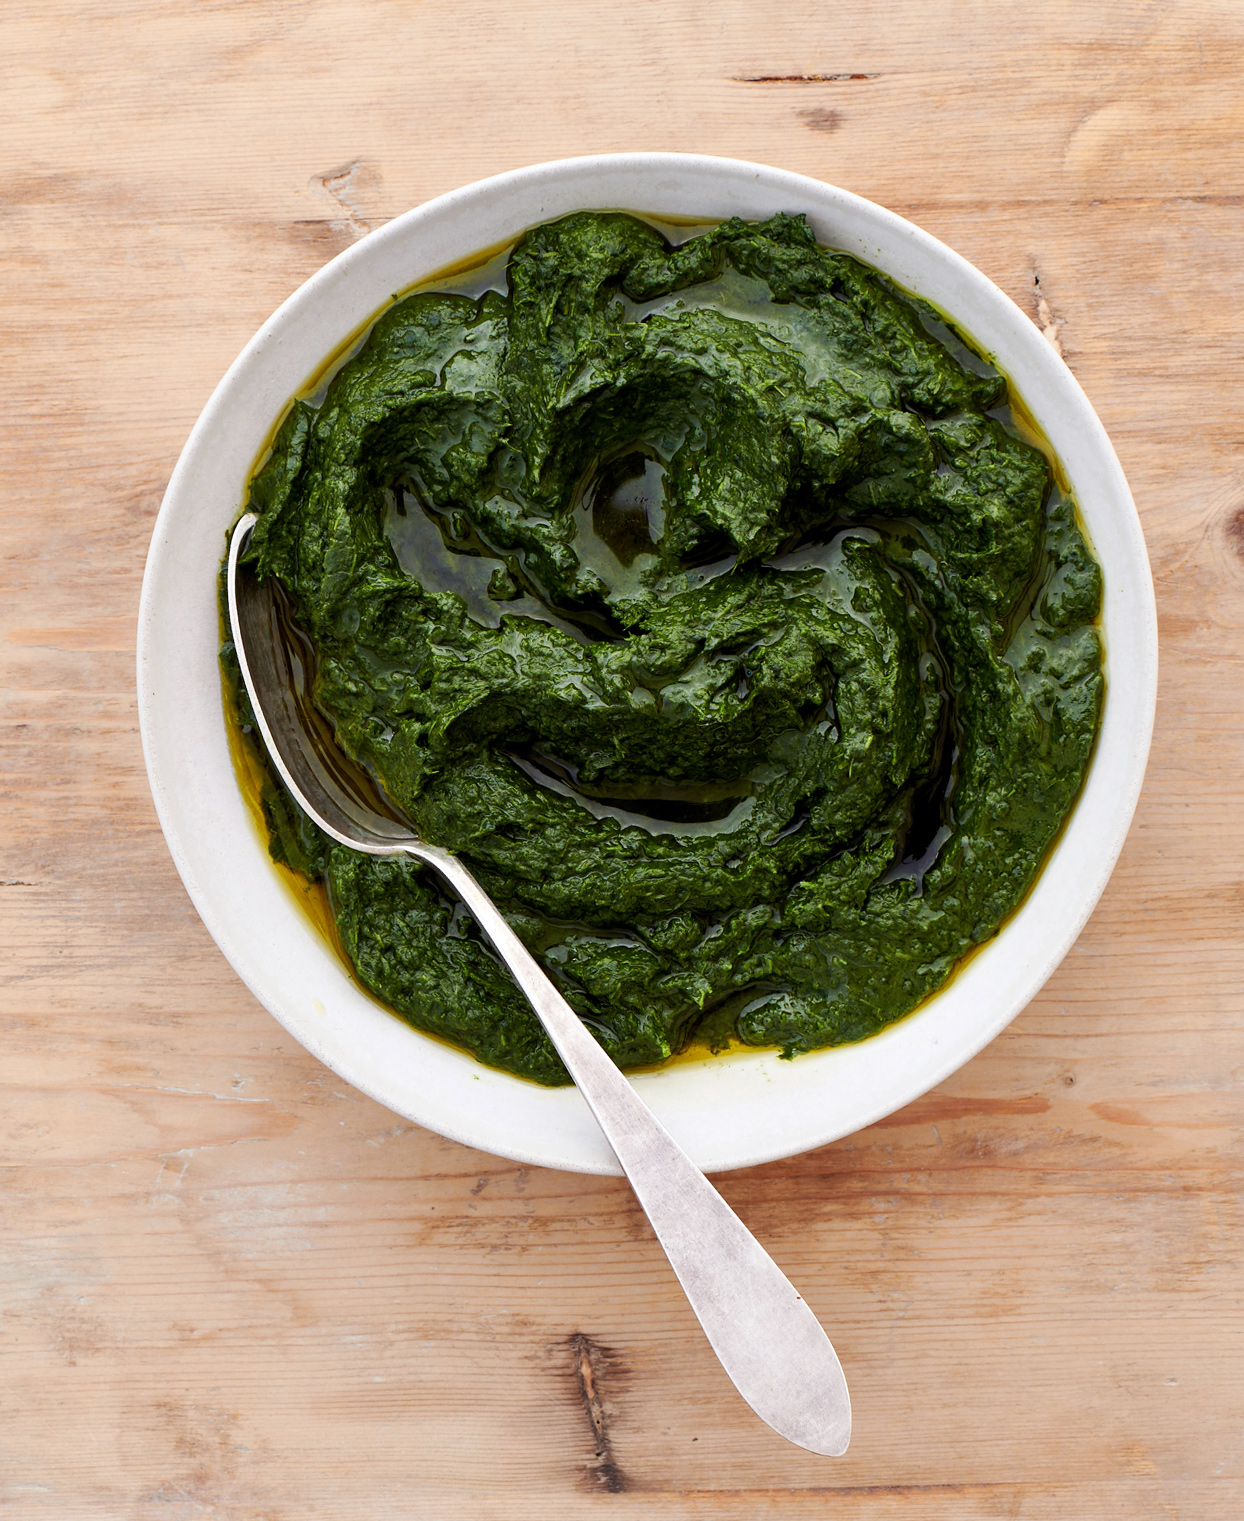 kale puree served in white dish